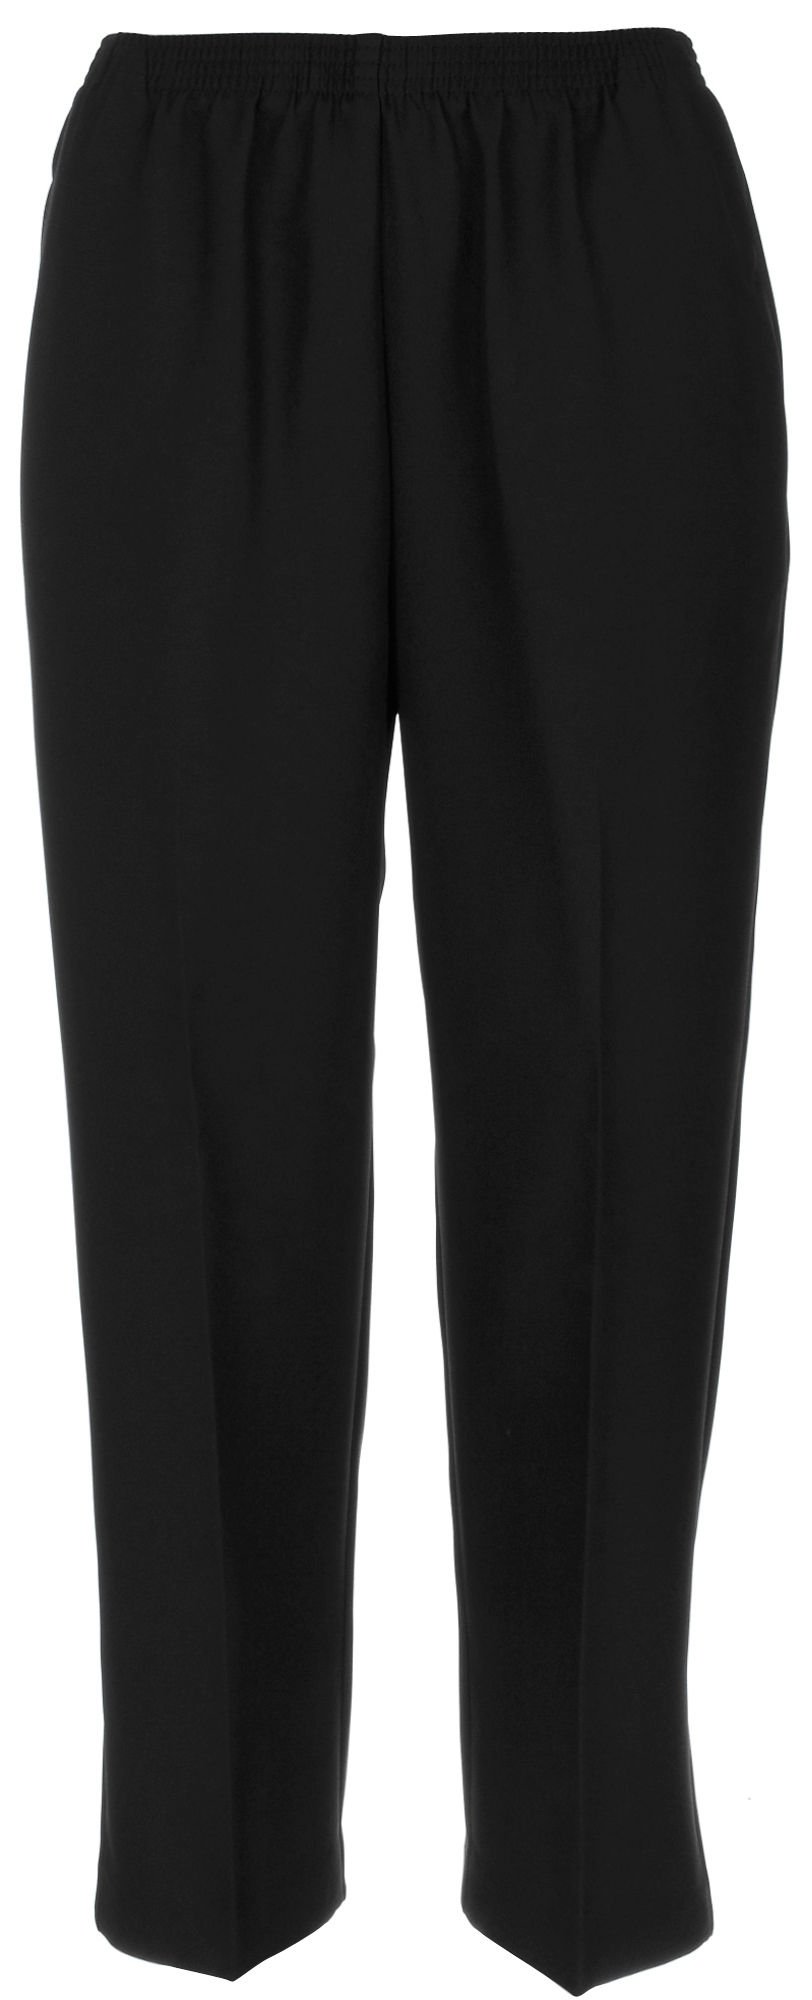 Alfred Dunner Petites' Pull-on Flat-front Pants Black 12P